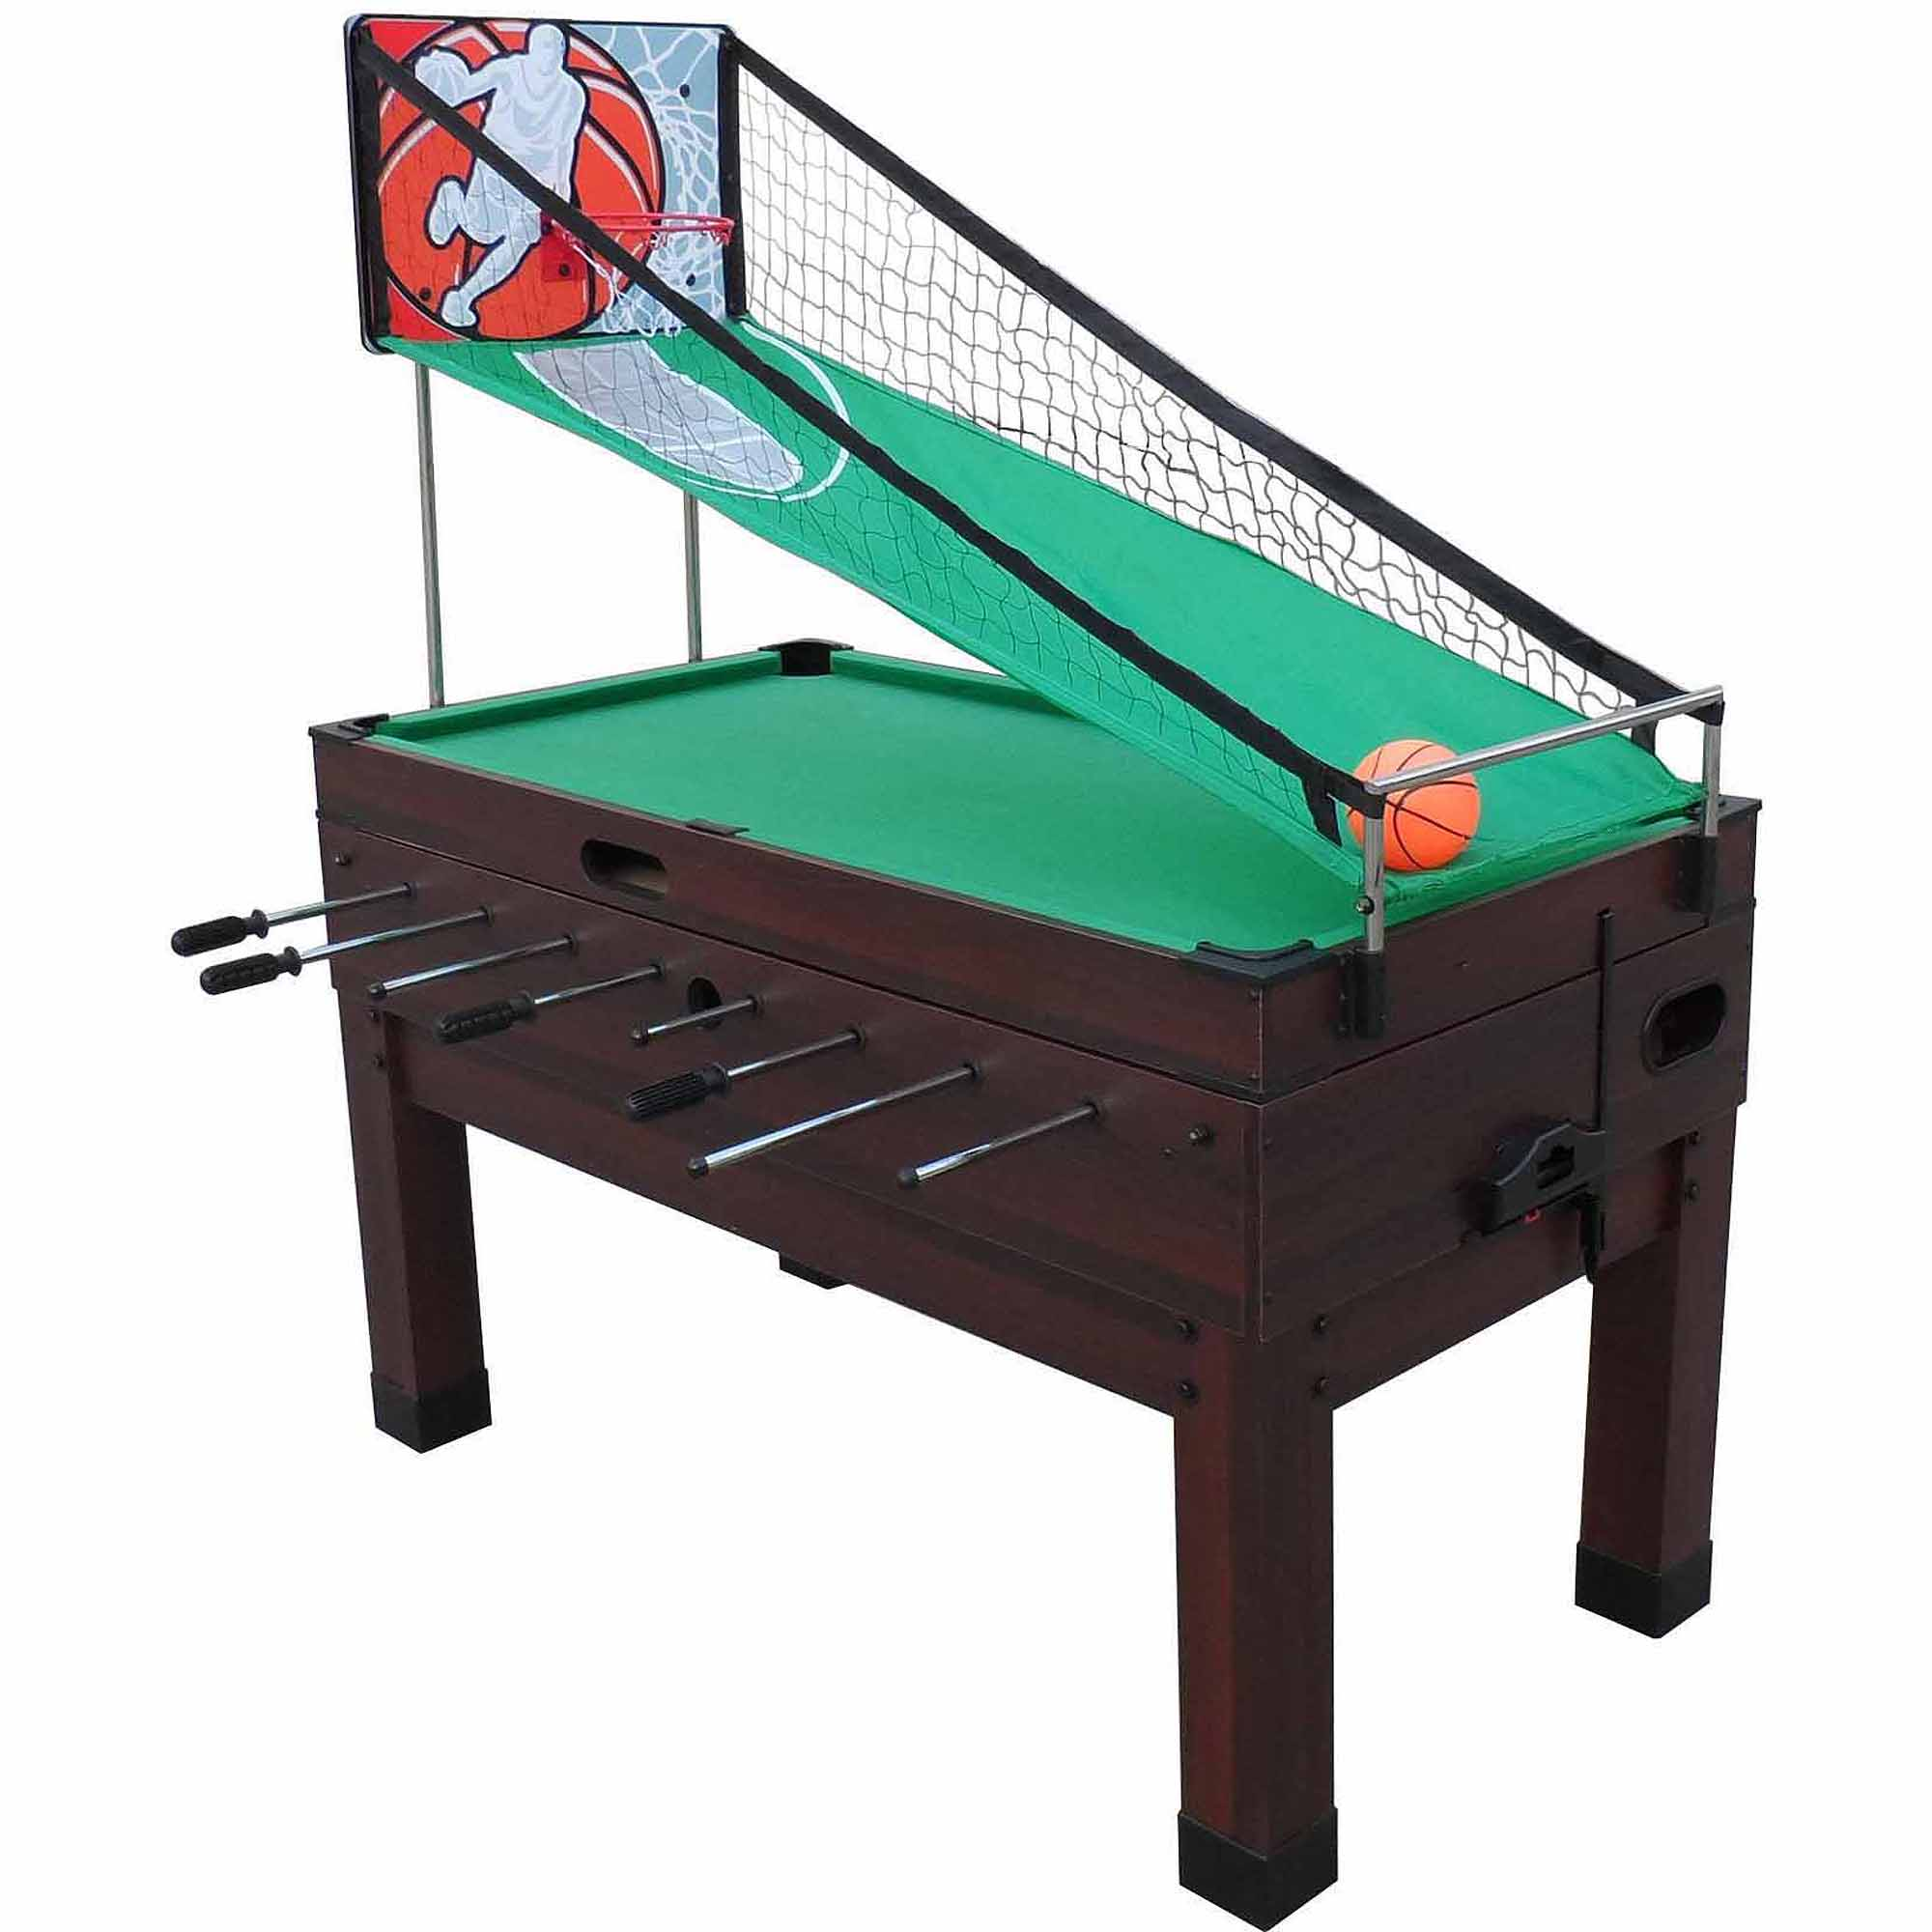 Playcraft Danbury Espresso 14-In-1 Combination Game Table